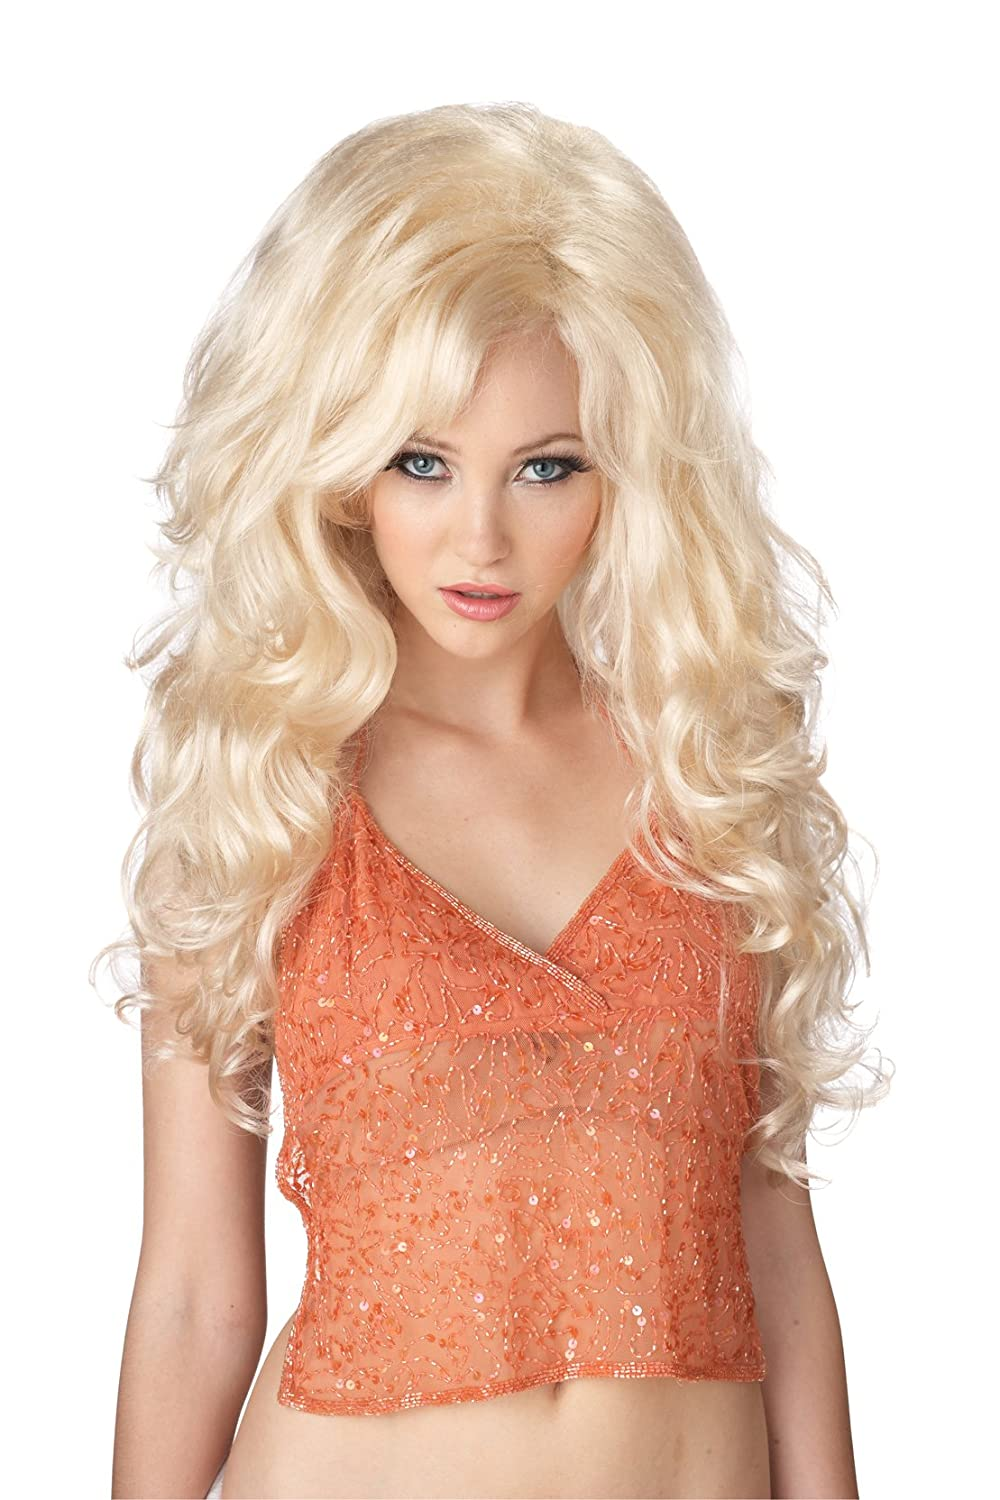 California Costumes Bombshell Wig Blonde One Size 70631